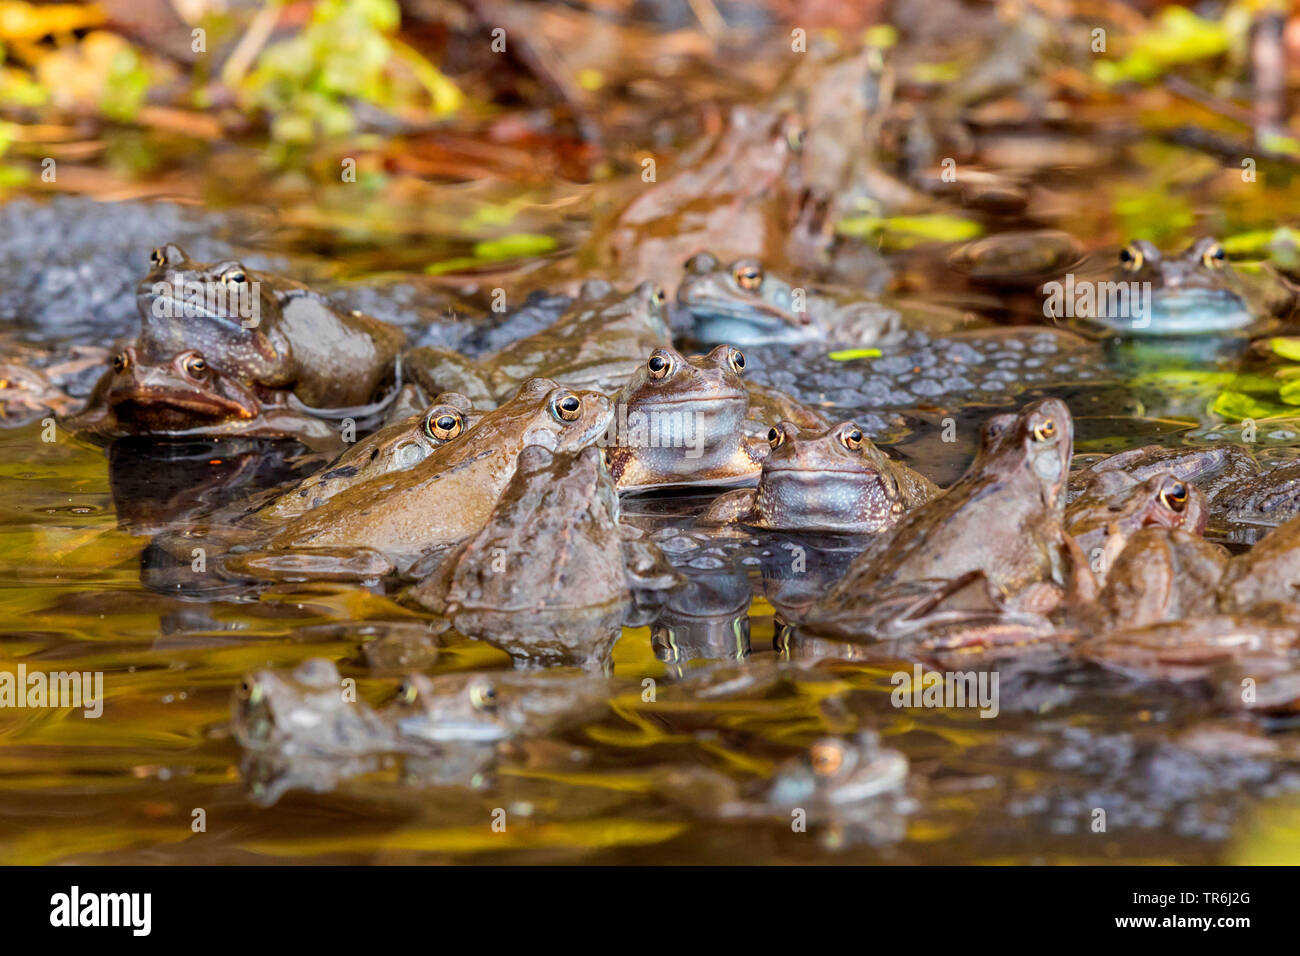 common frog, grass frog (Rana temporaria), several grass frogs spawning with spawn clumps, Germany, Bavaria - Stock Image